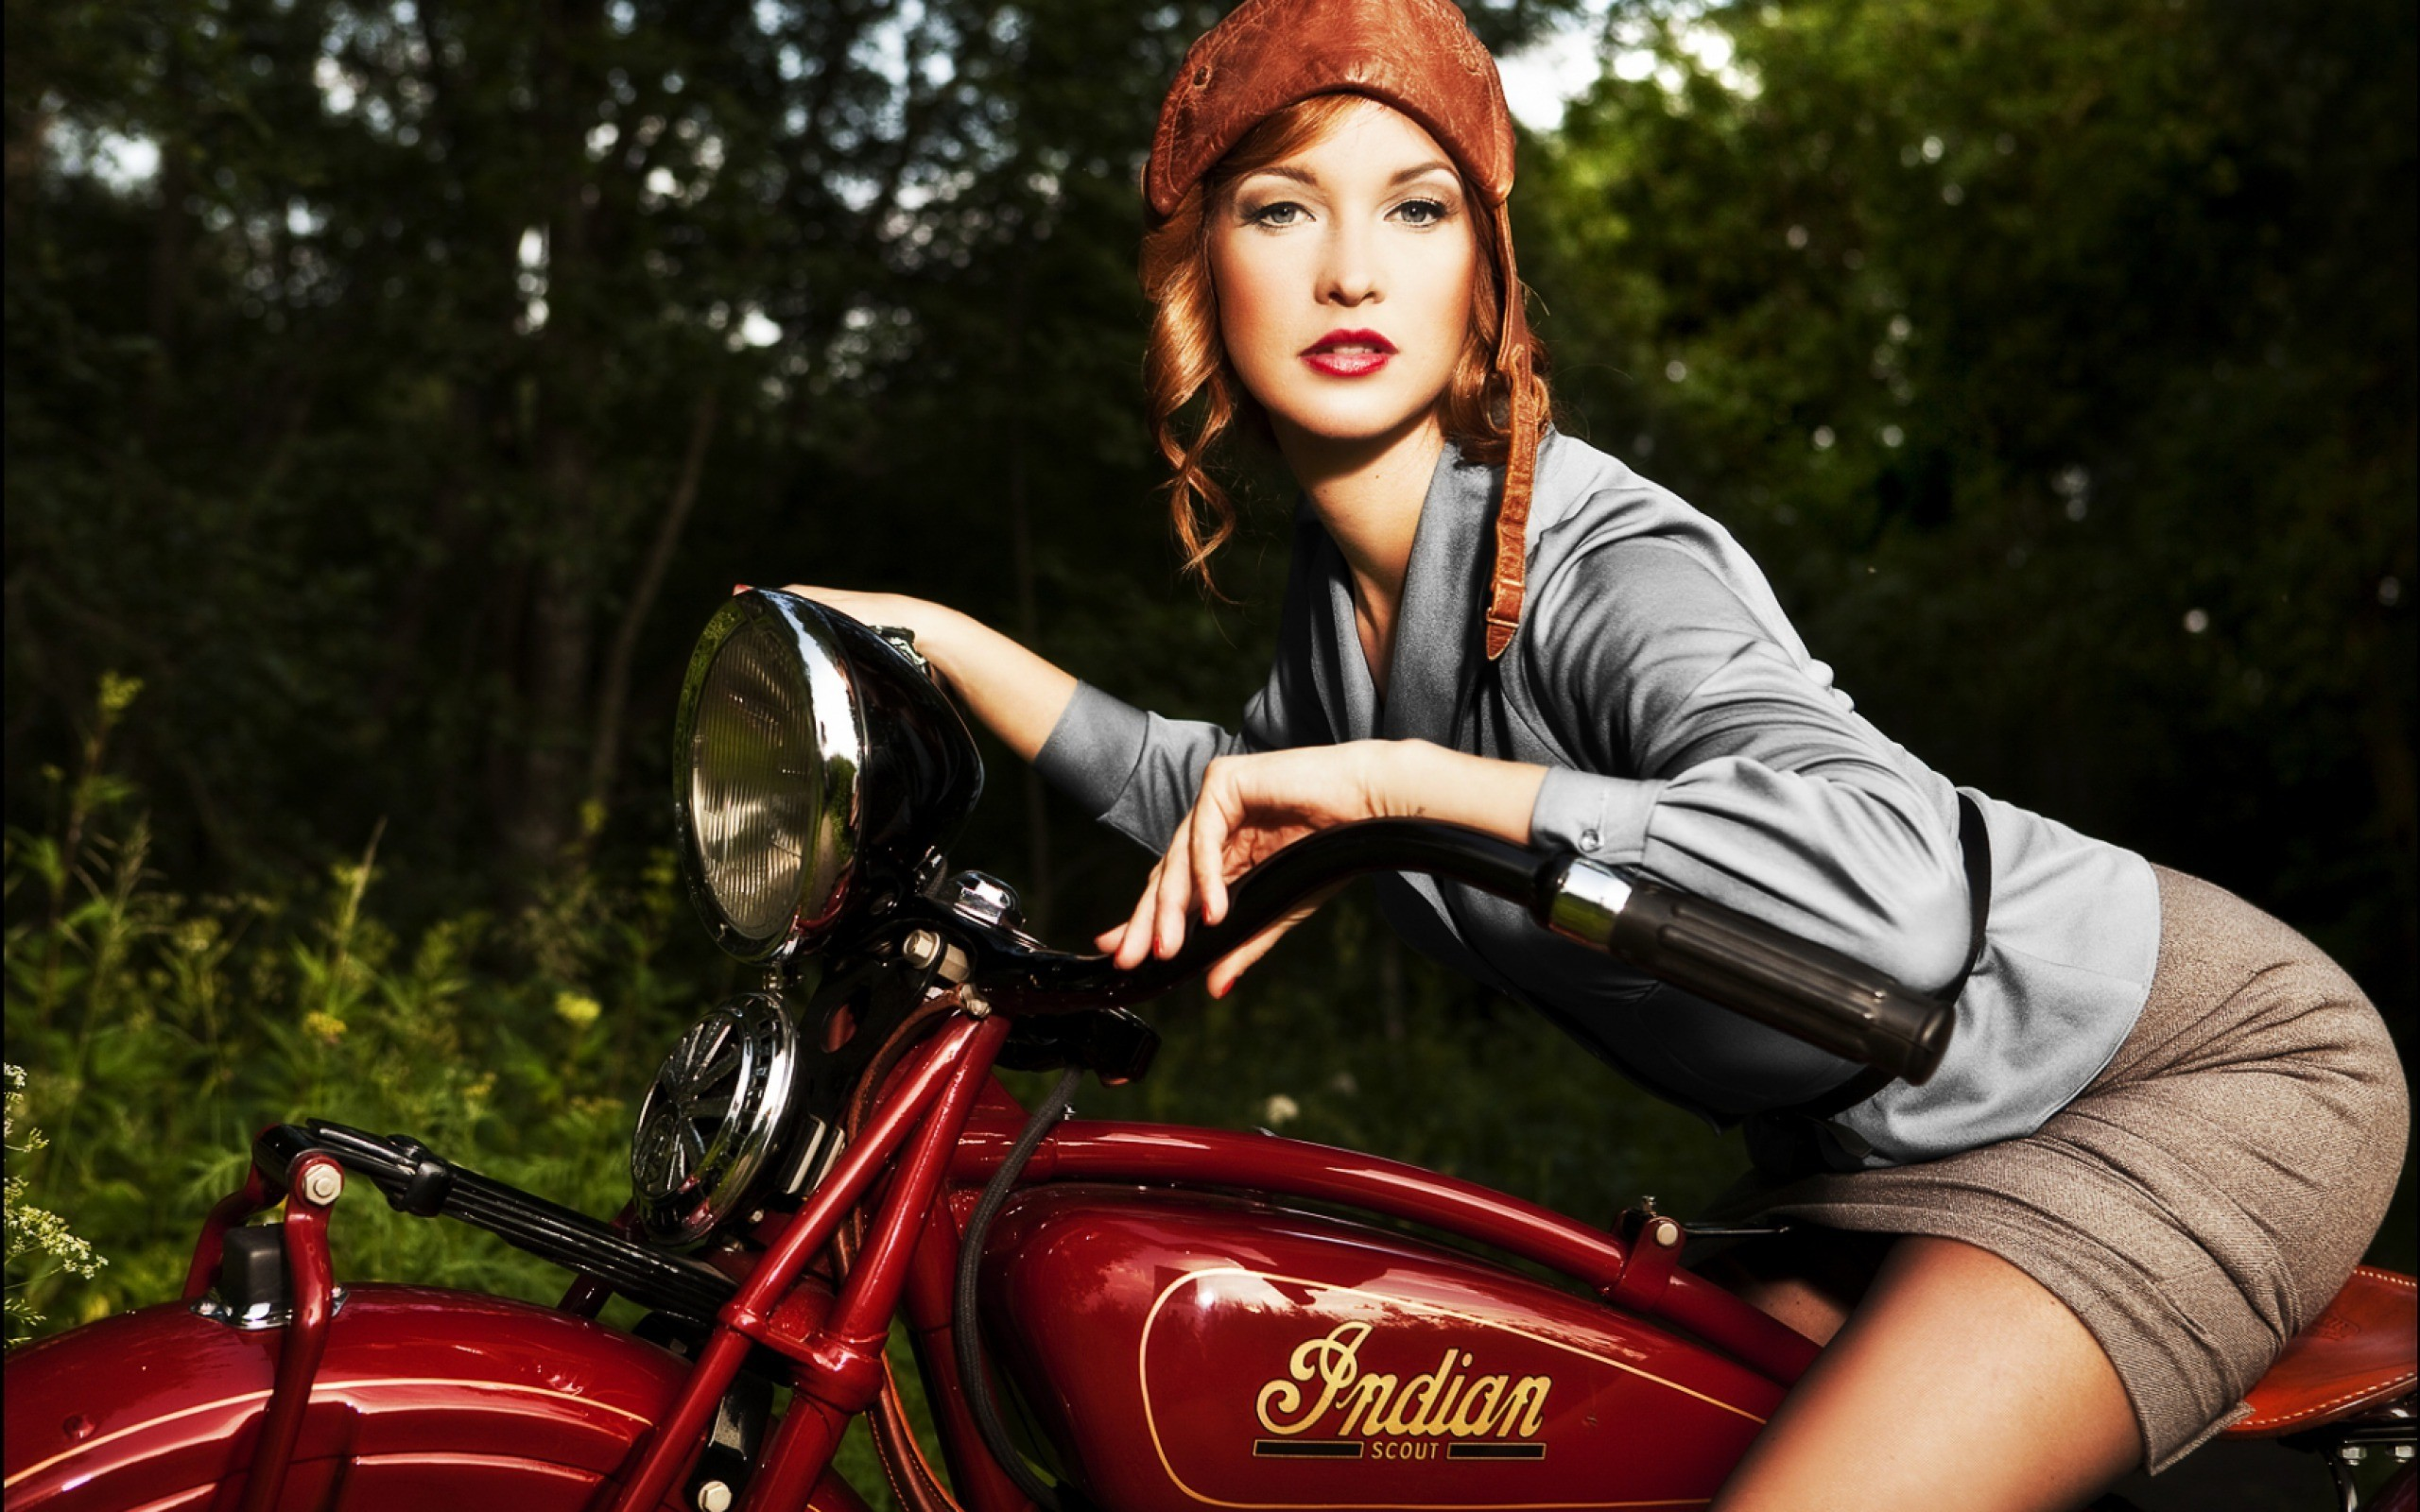 motorbikes Indian wallpapers and images   wallpapers pictures photos 2560x1600